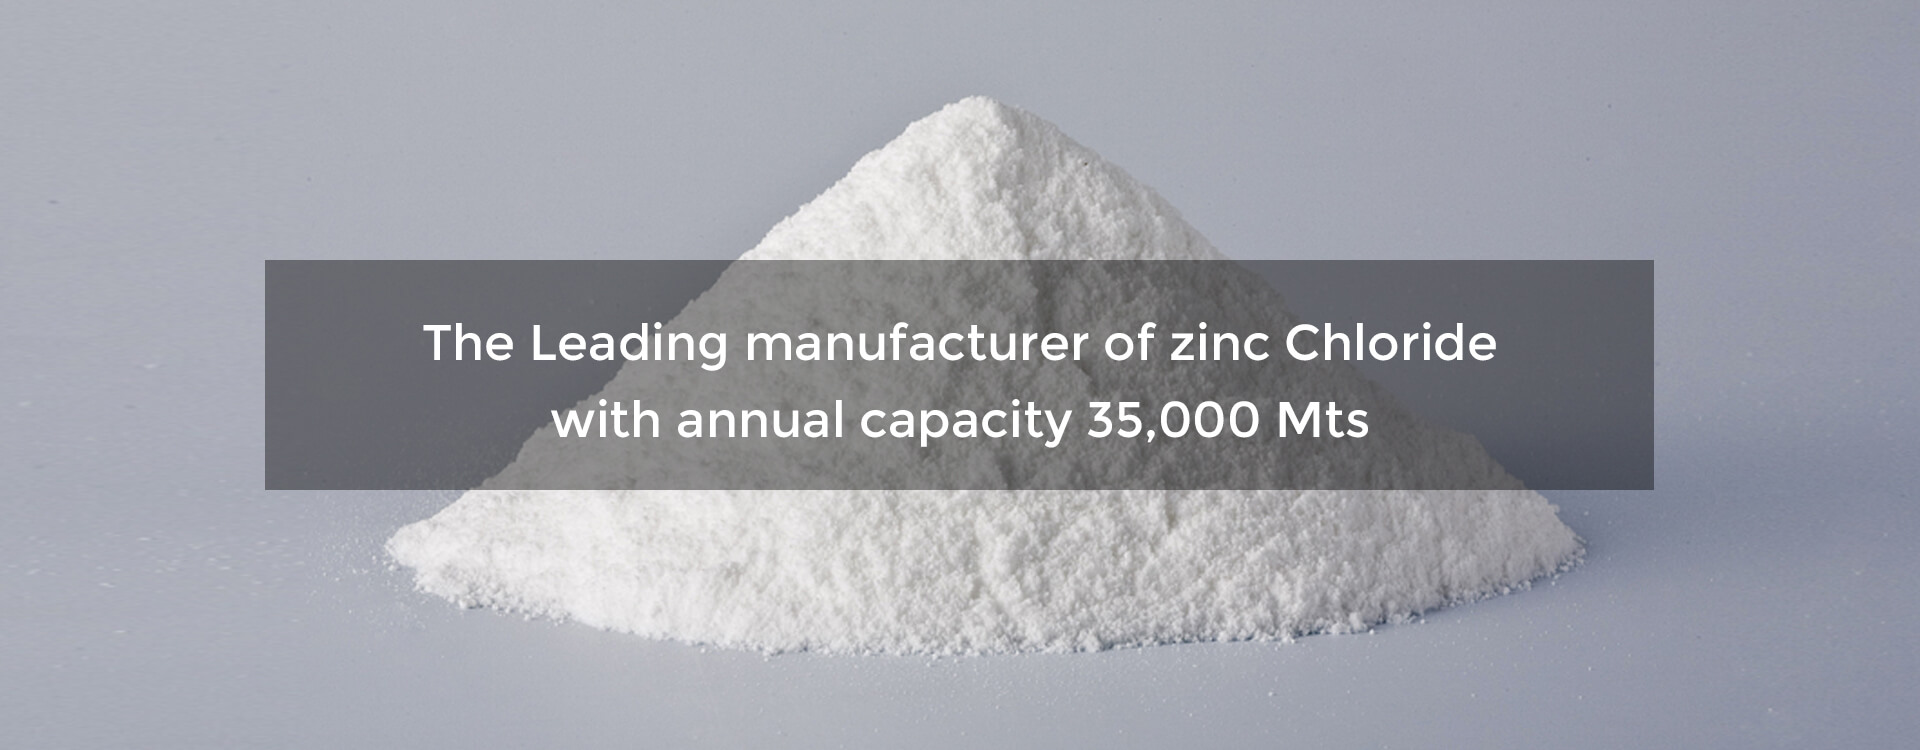 The Leading manufacturer of zinc chloride with annual capacity 35,000 Mts